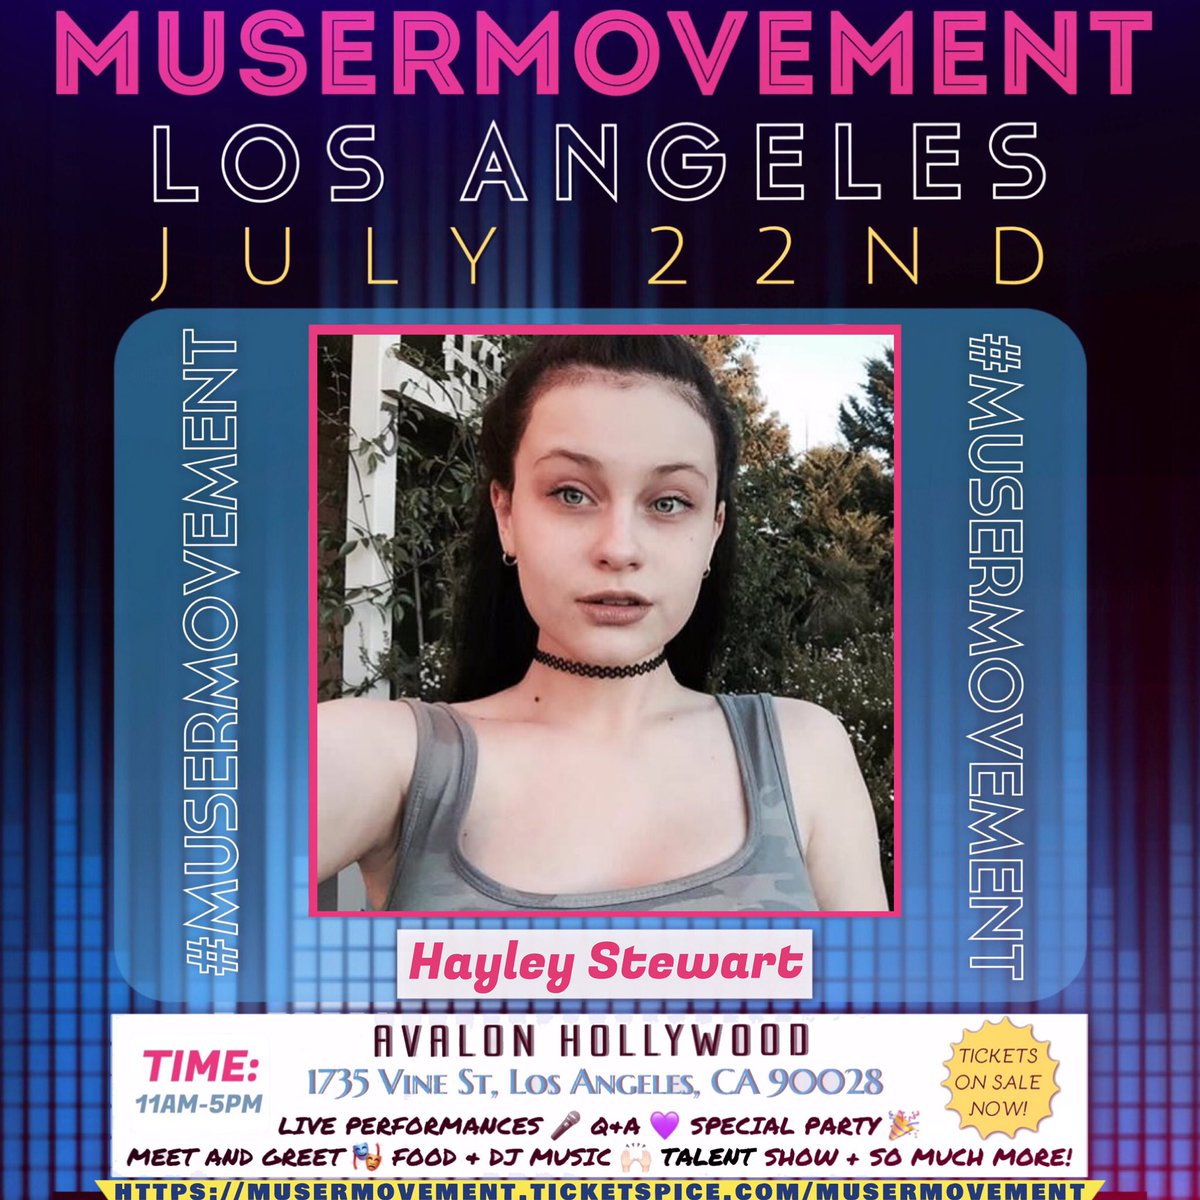 Musermovement musermovement s twitter profile twicopy whos excited to see hayley stewart because shell be at musermovement la m4hsunfo